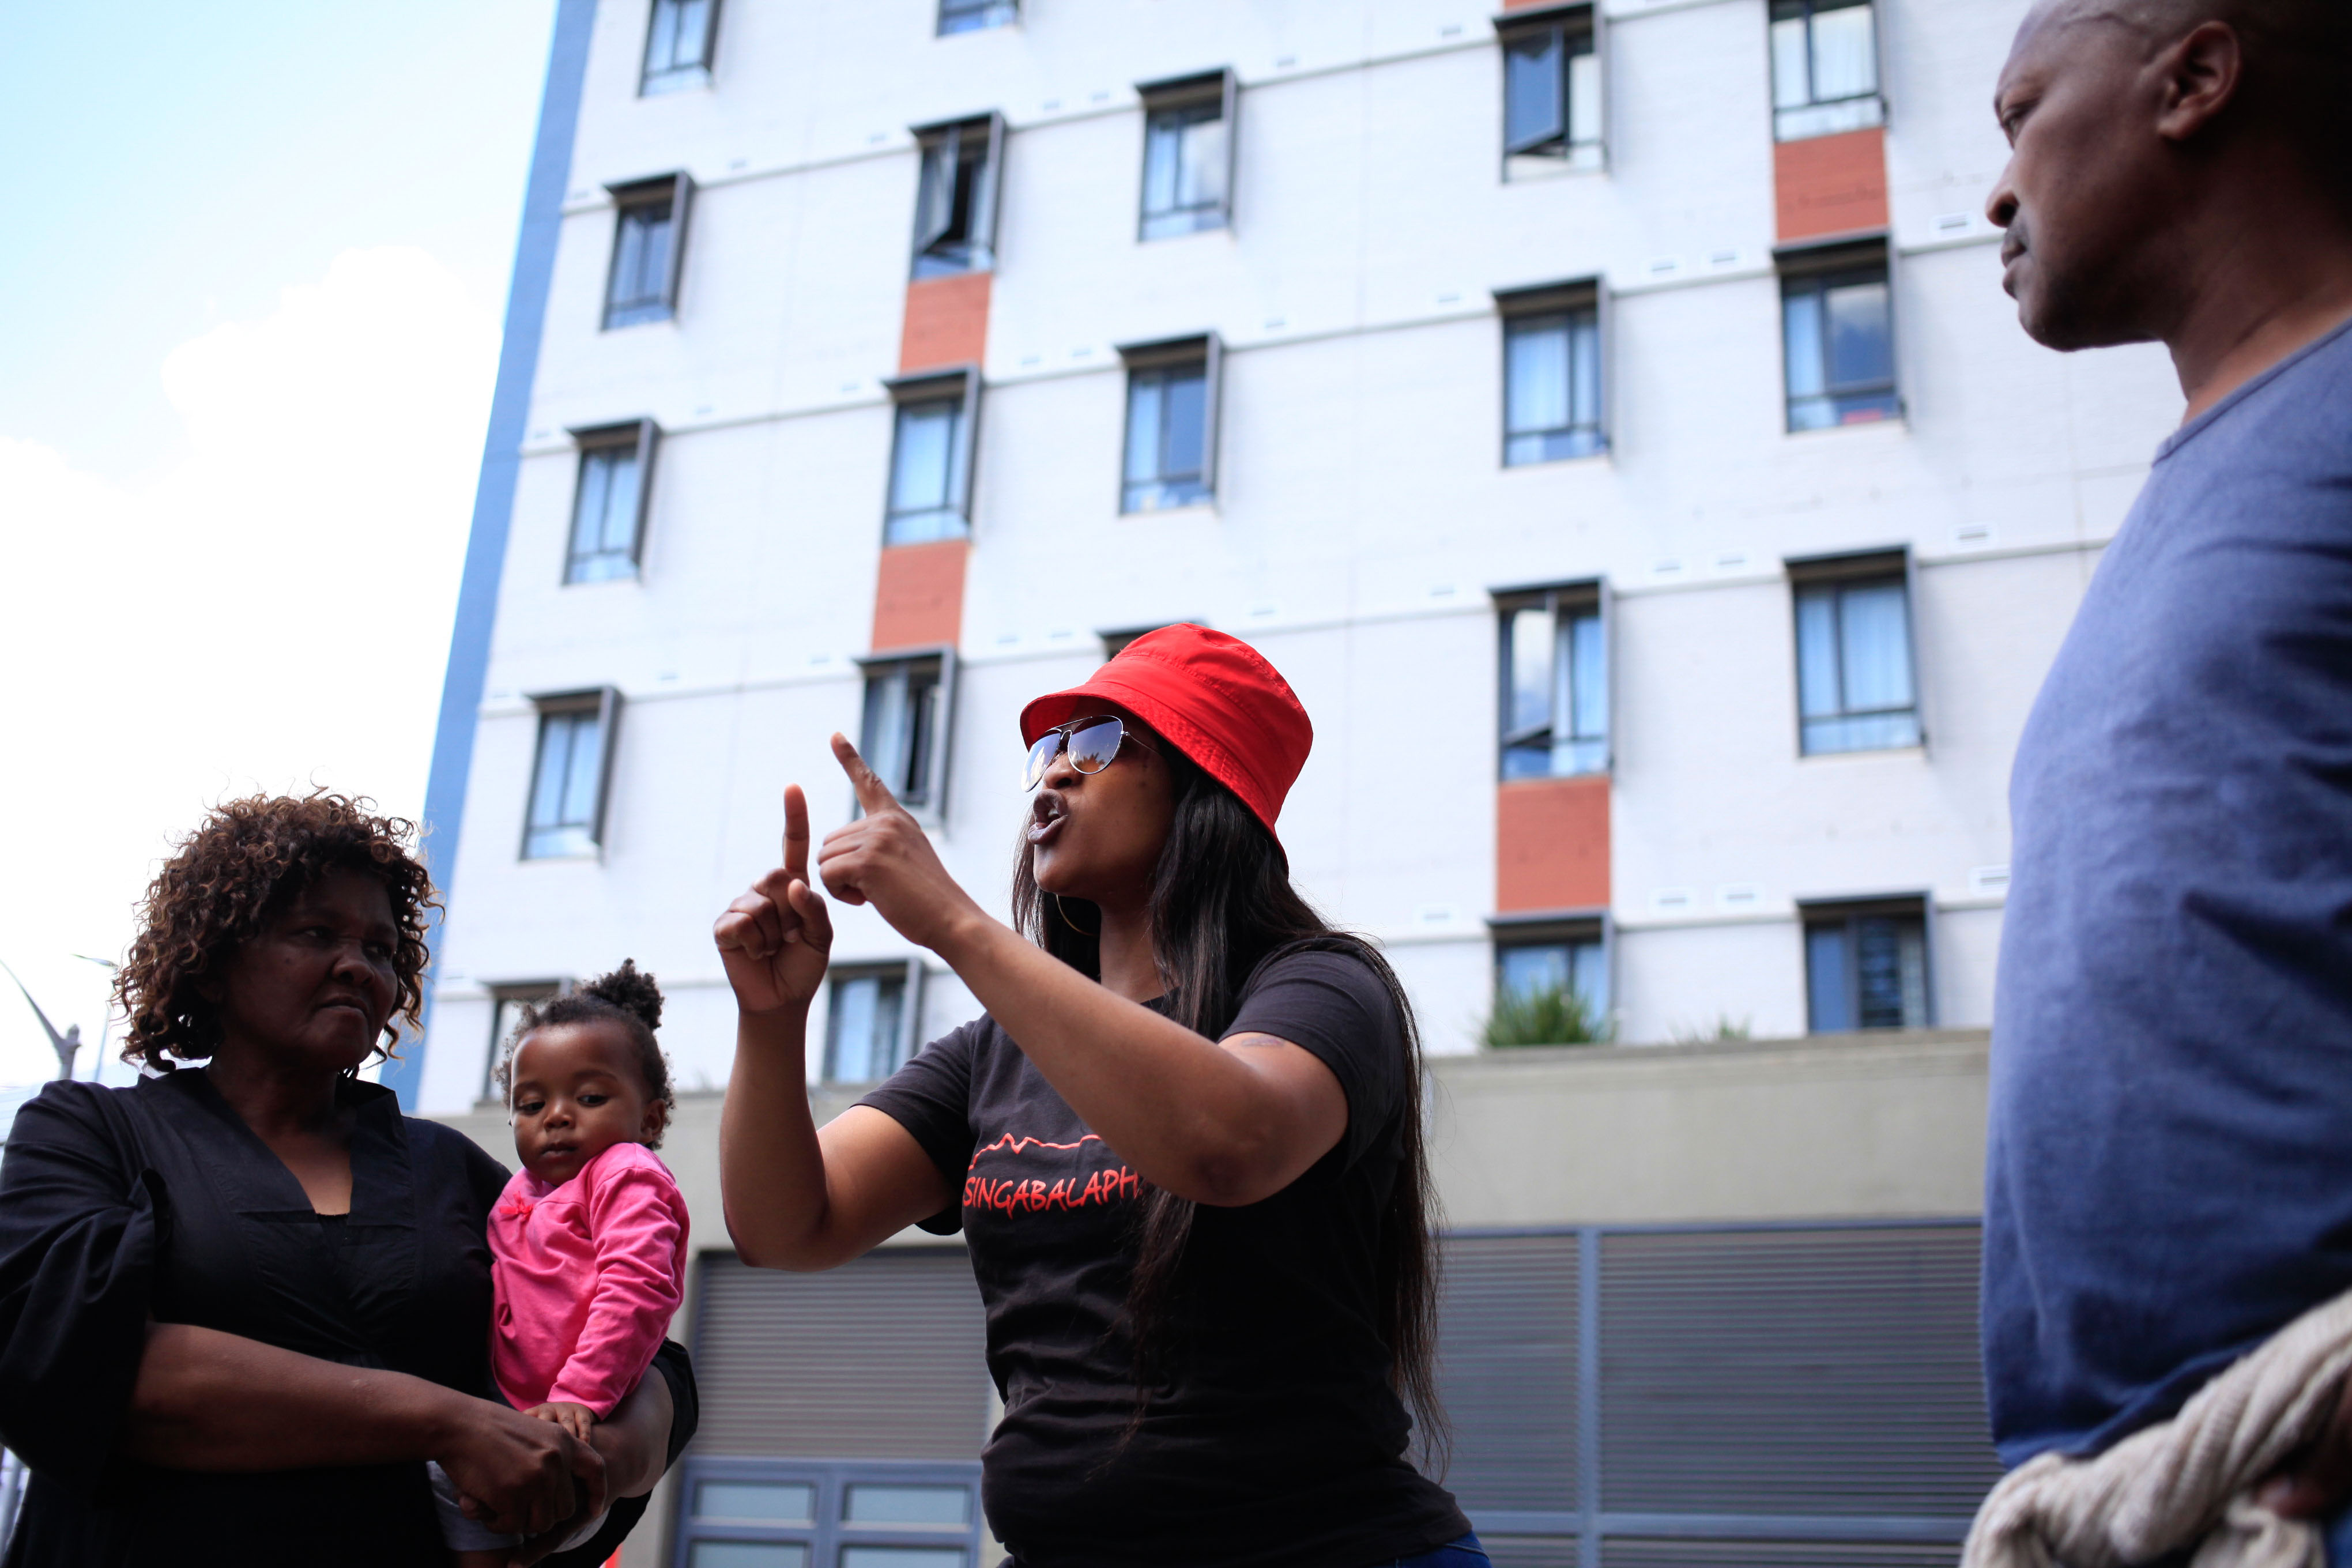 21 October 2019: Salonica Mbambani describing the forcible eviction in which they were given 15 minutes to leave.